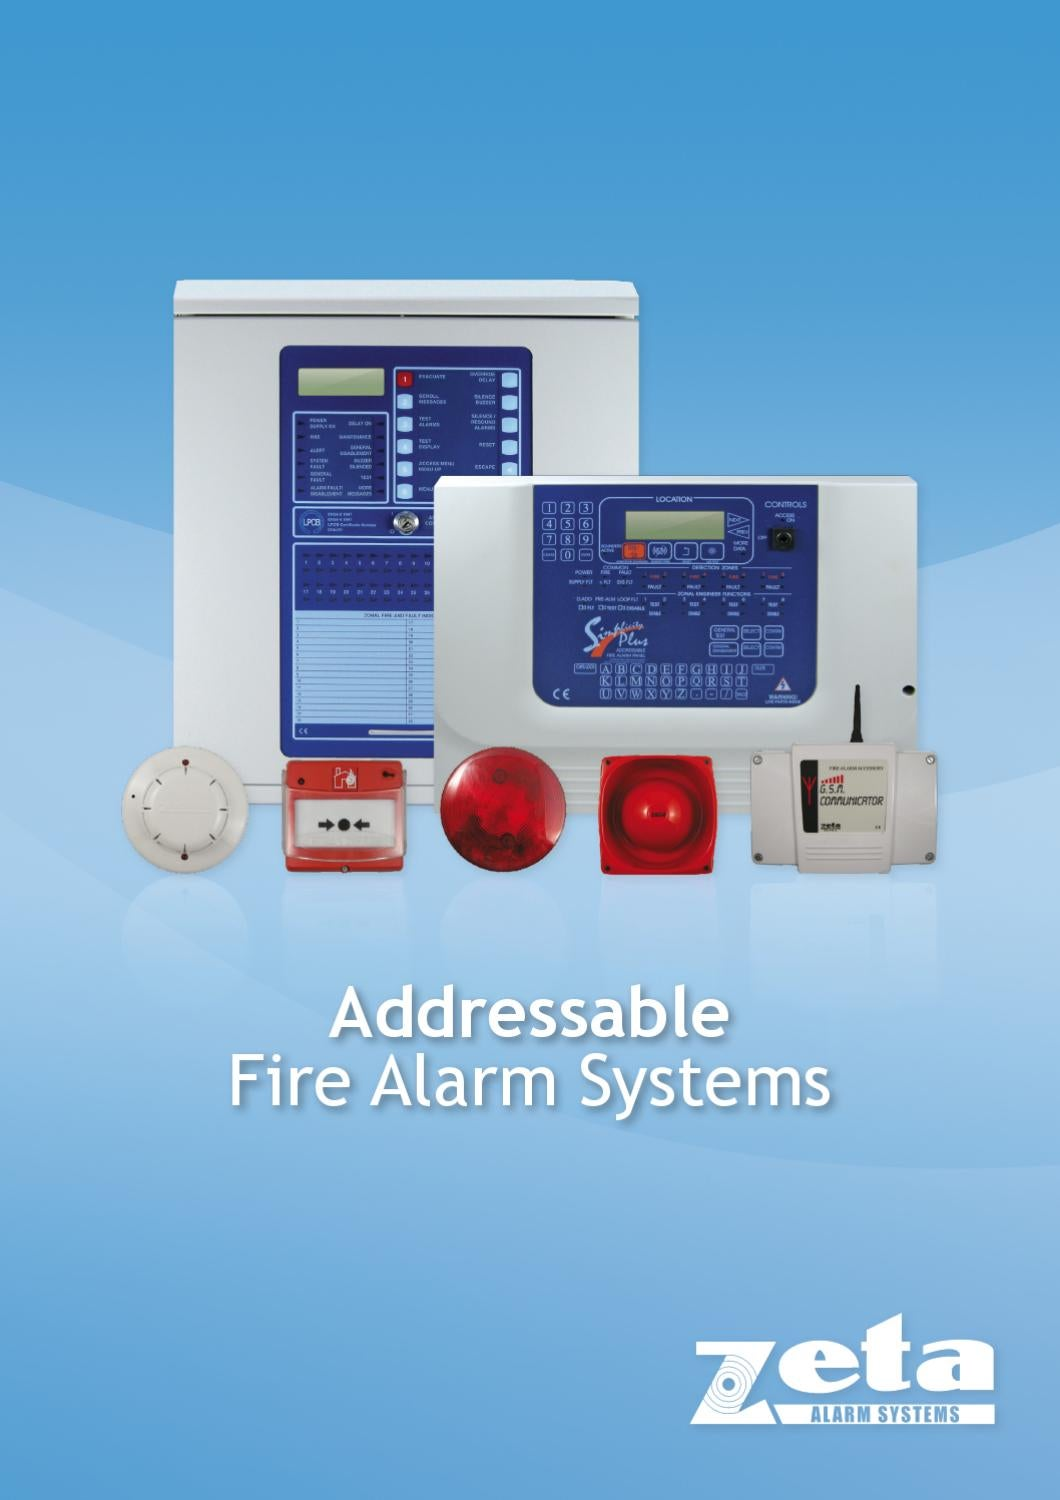 Addressable Fire Alarm Systems By Zeta Alarm Systems Issuu